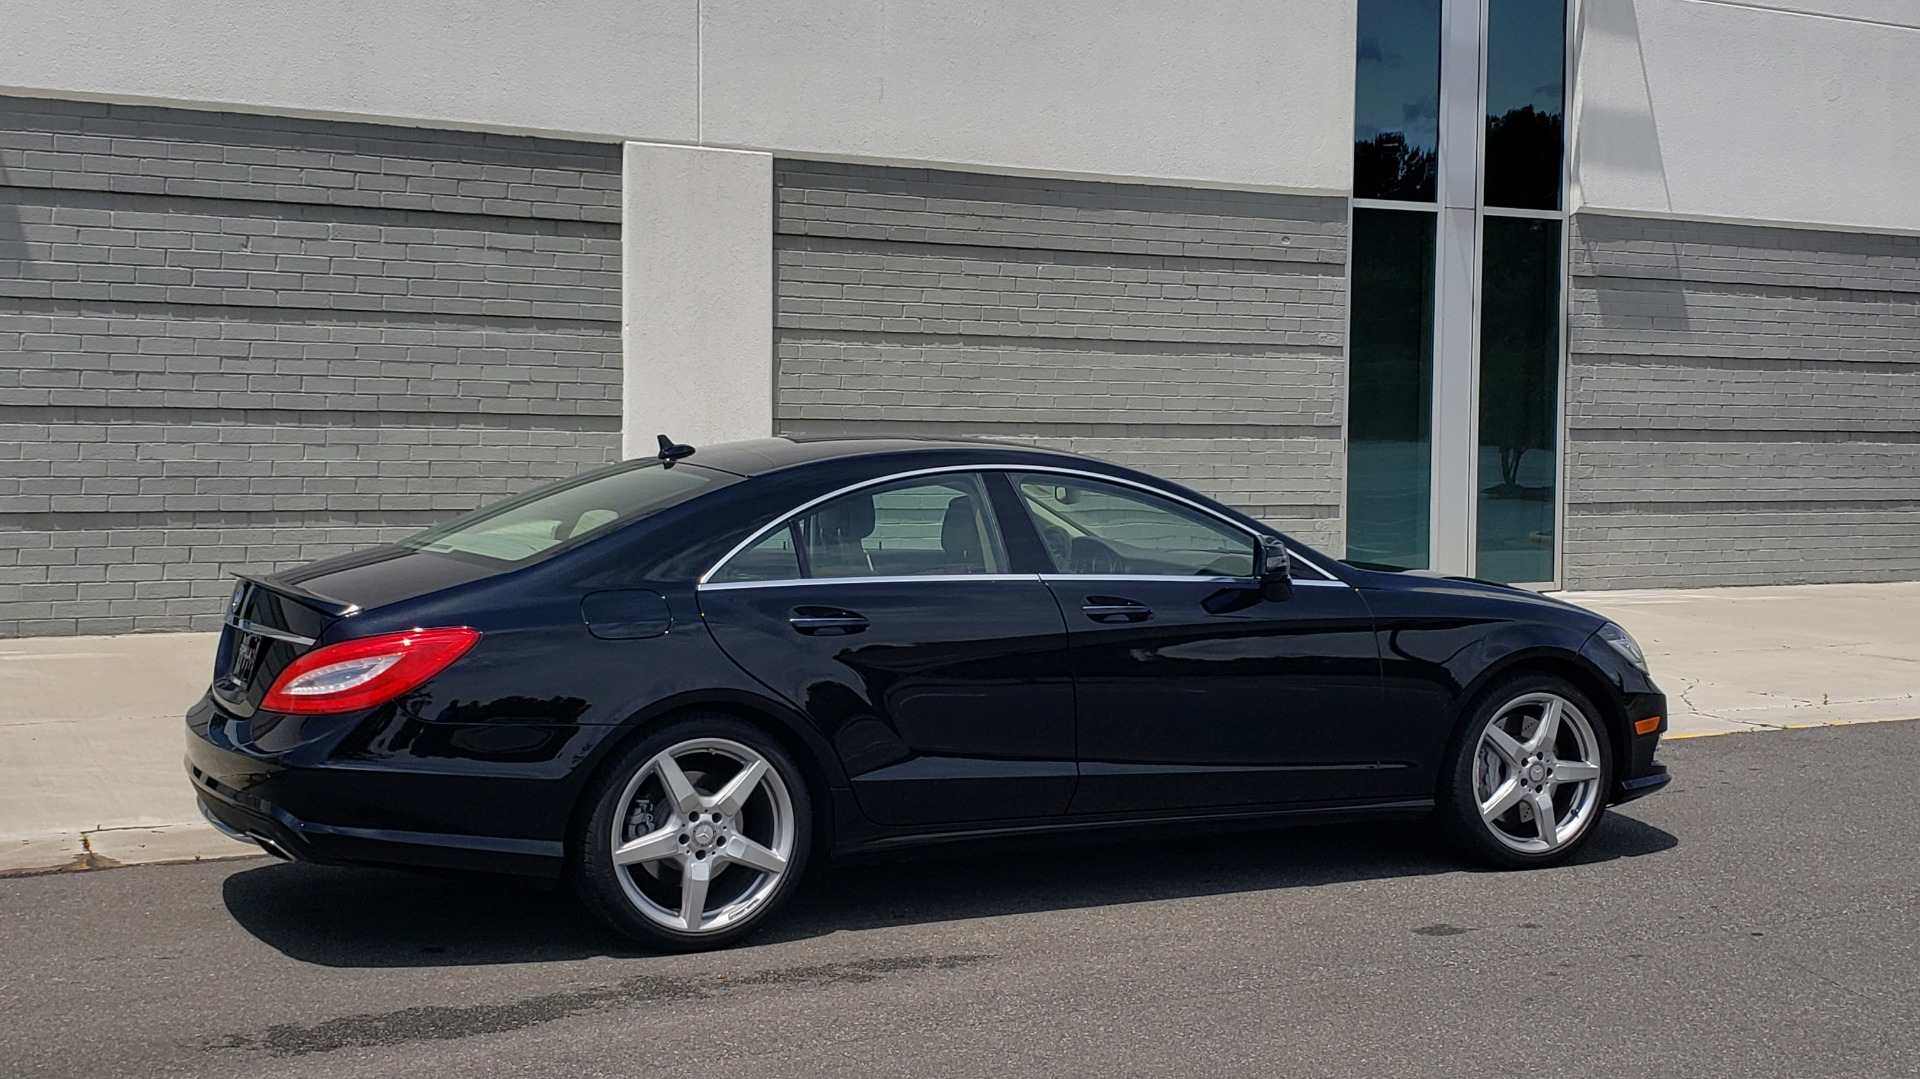 Used 2014 Mercedes-Benz CLS-CLASS CLS 550 PREMIUM / AMG SPORT WHLS / SUNROOF / LANE TRACK / PARKTRONIC for sale Sold at Formula Imports in Charlotte NC 28227 9